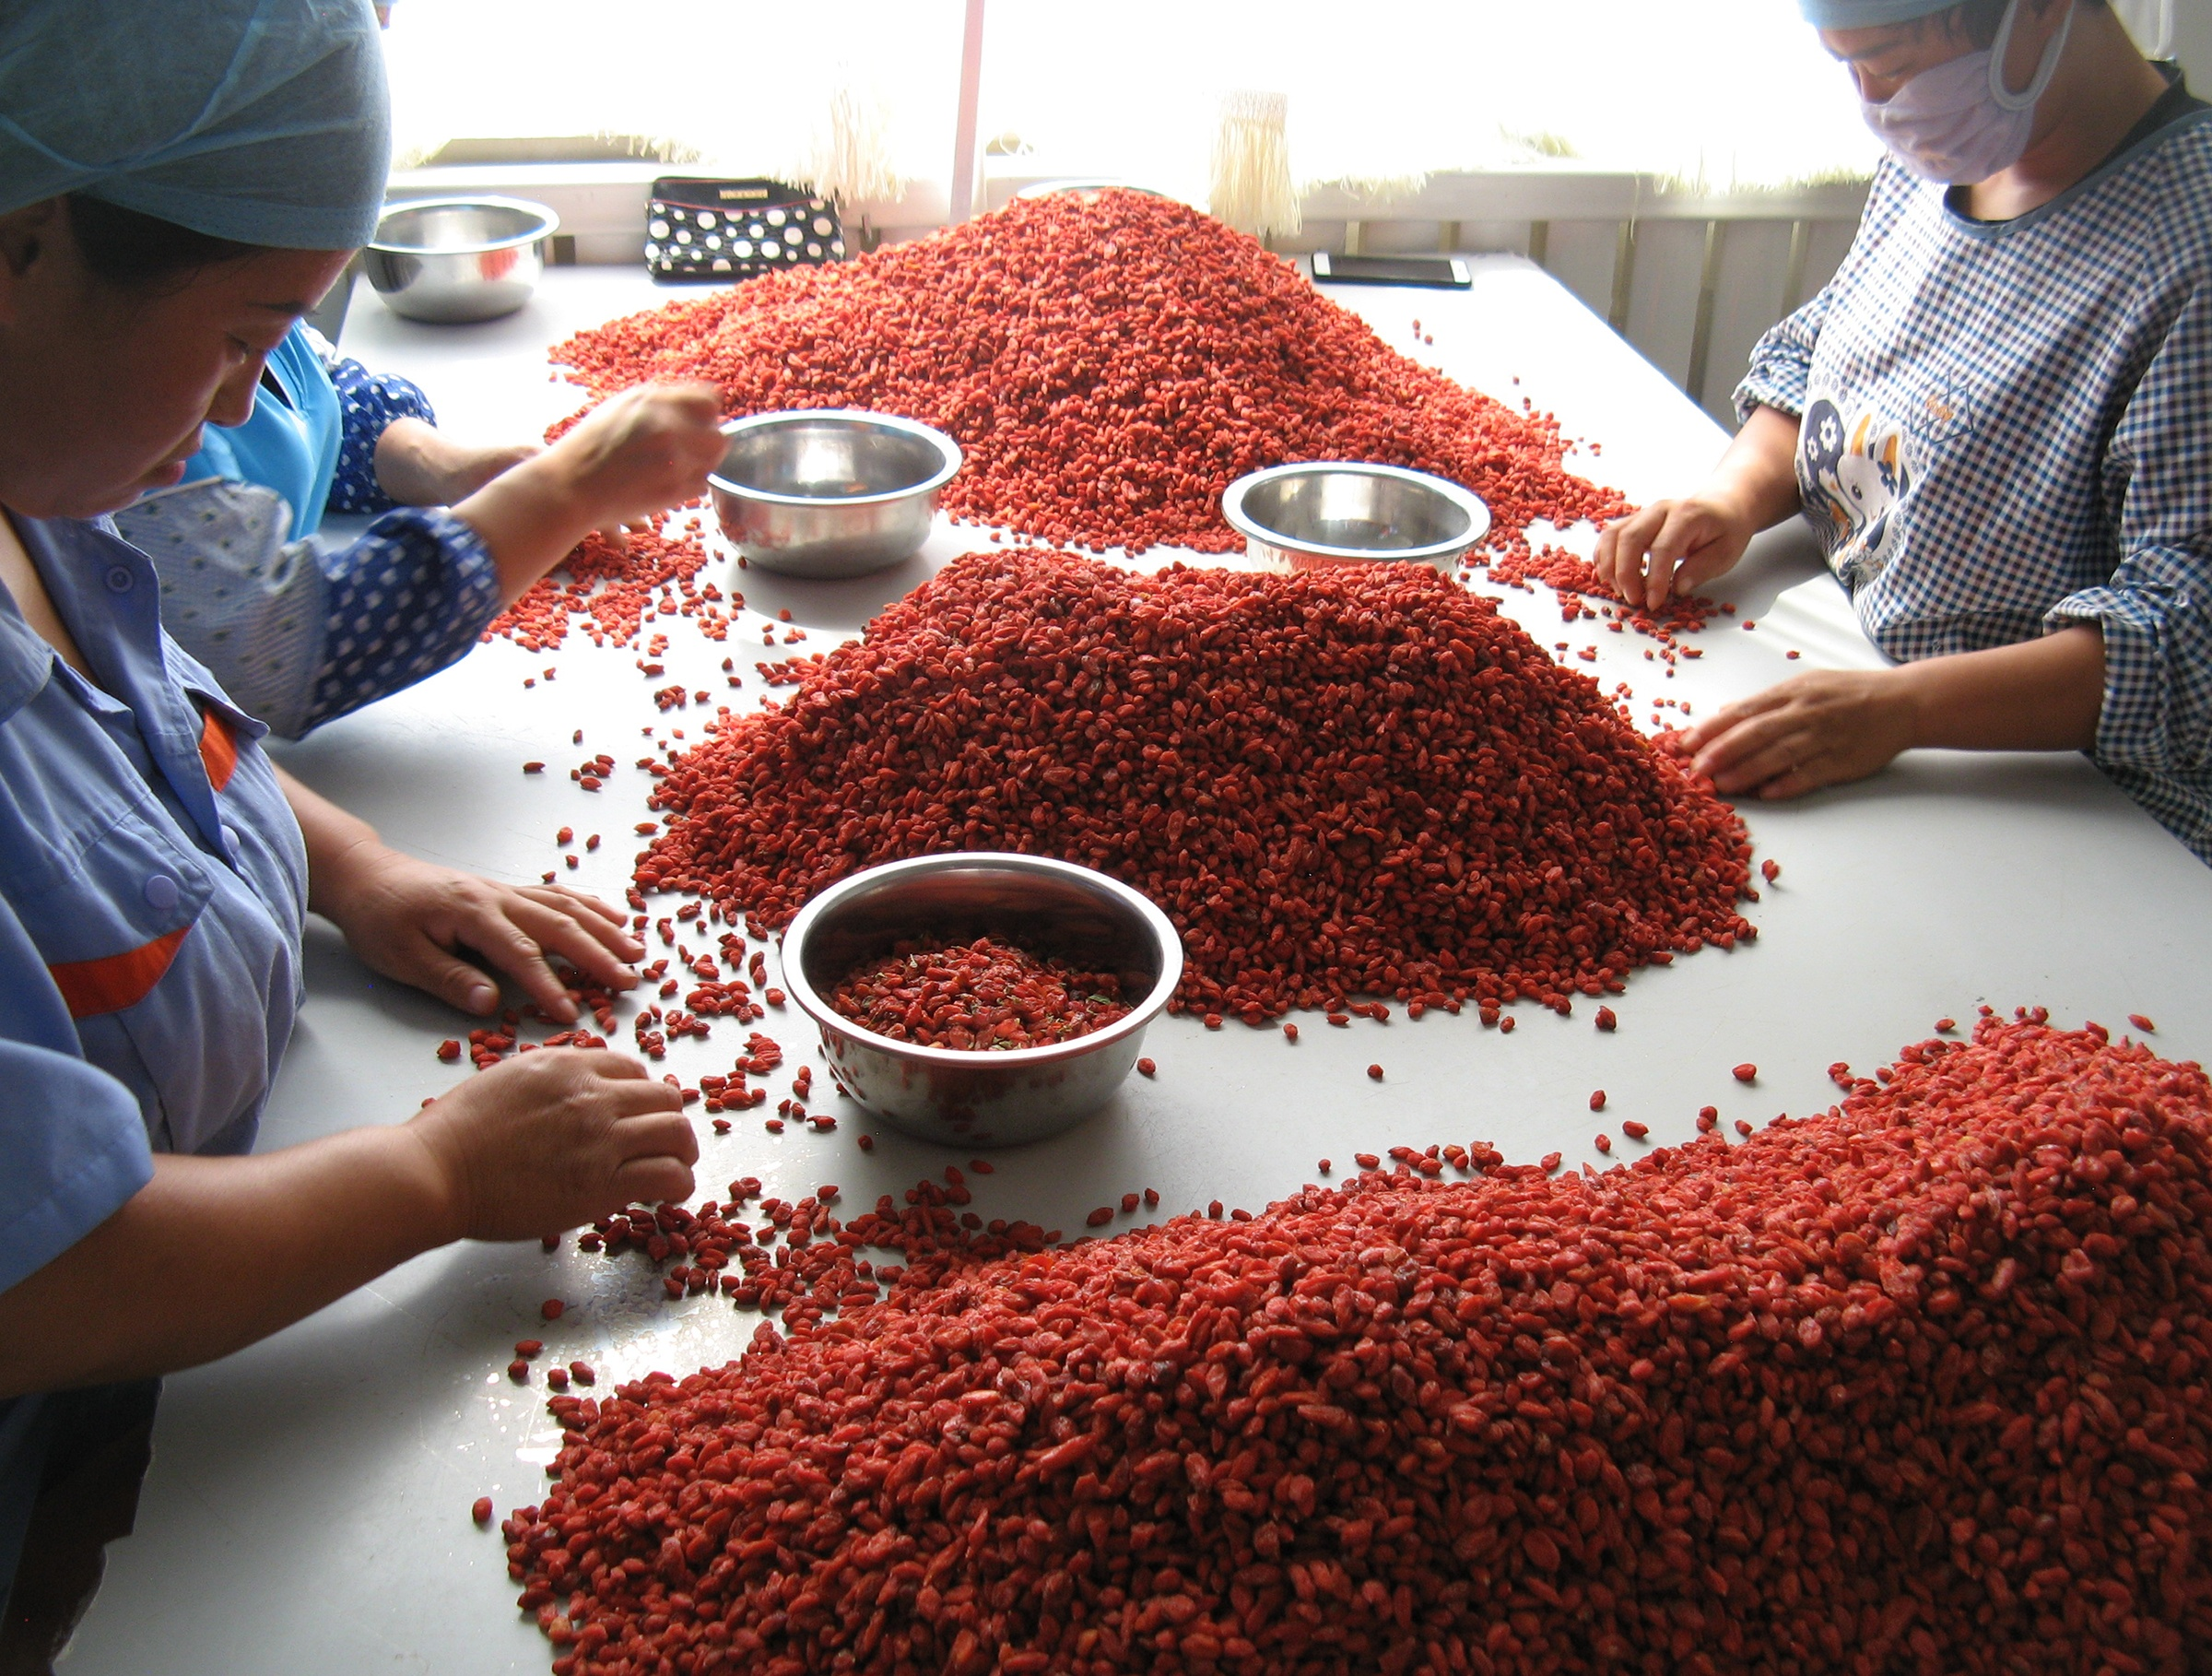 Lycii berries being hand sorted by workers sitting at a table in China